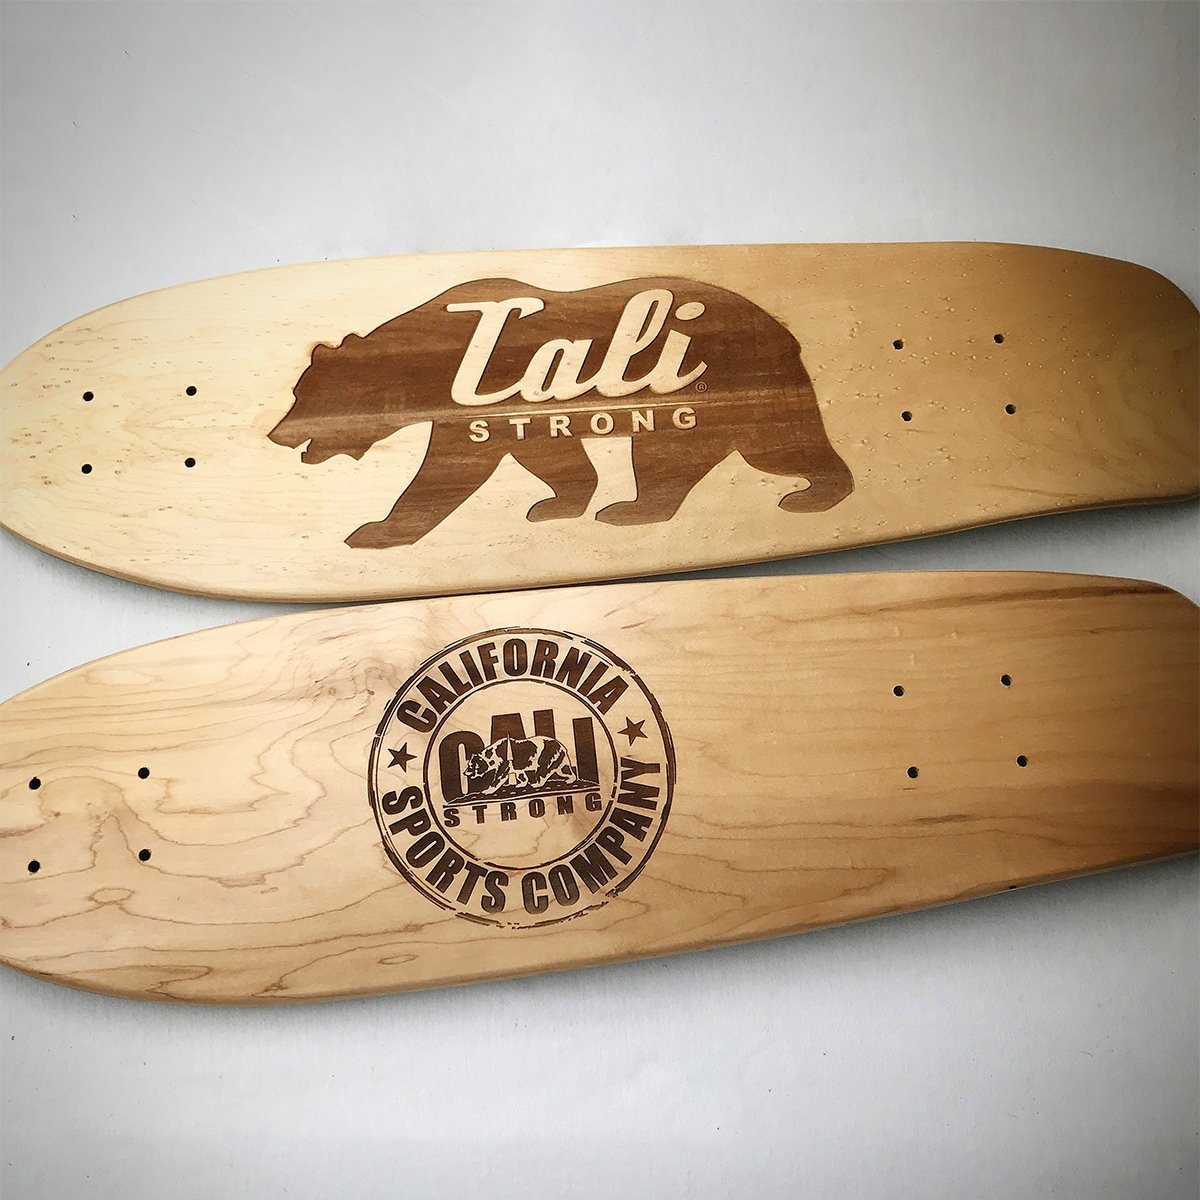 Which engraved woodwork skateboard design do you like best?